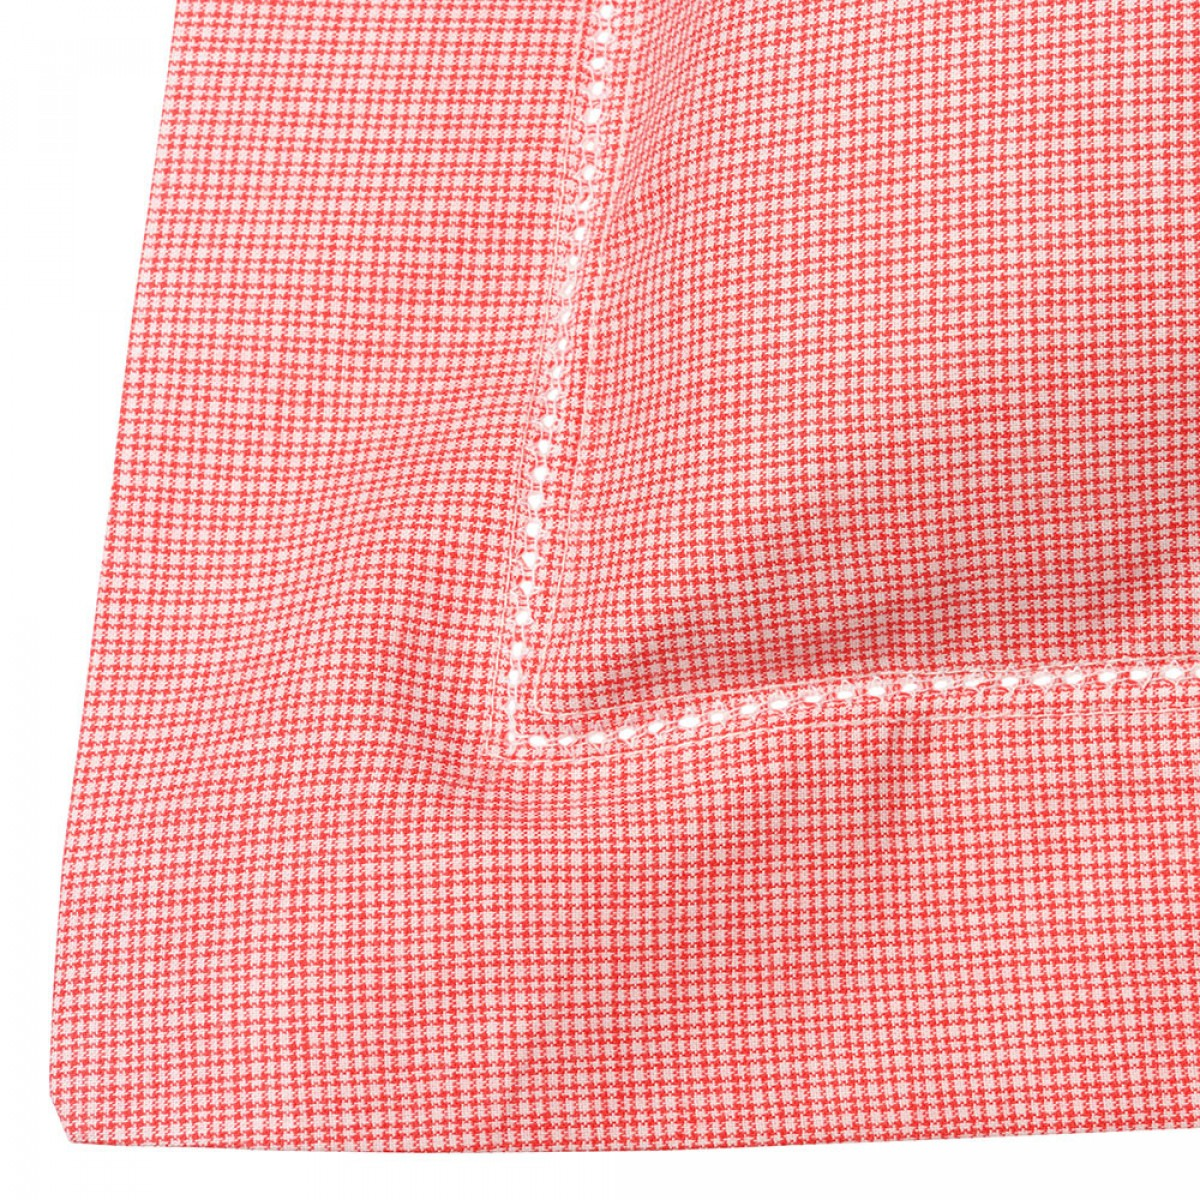 Red and White Check Pillowcase